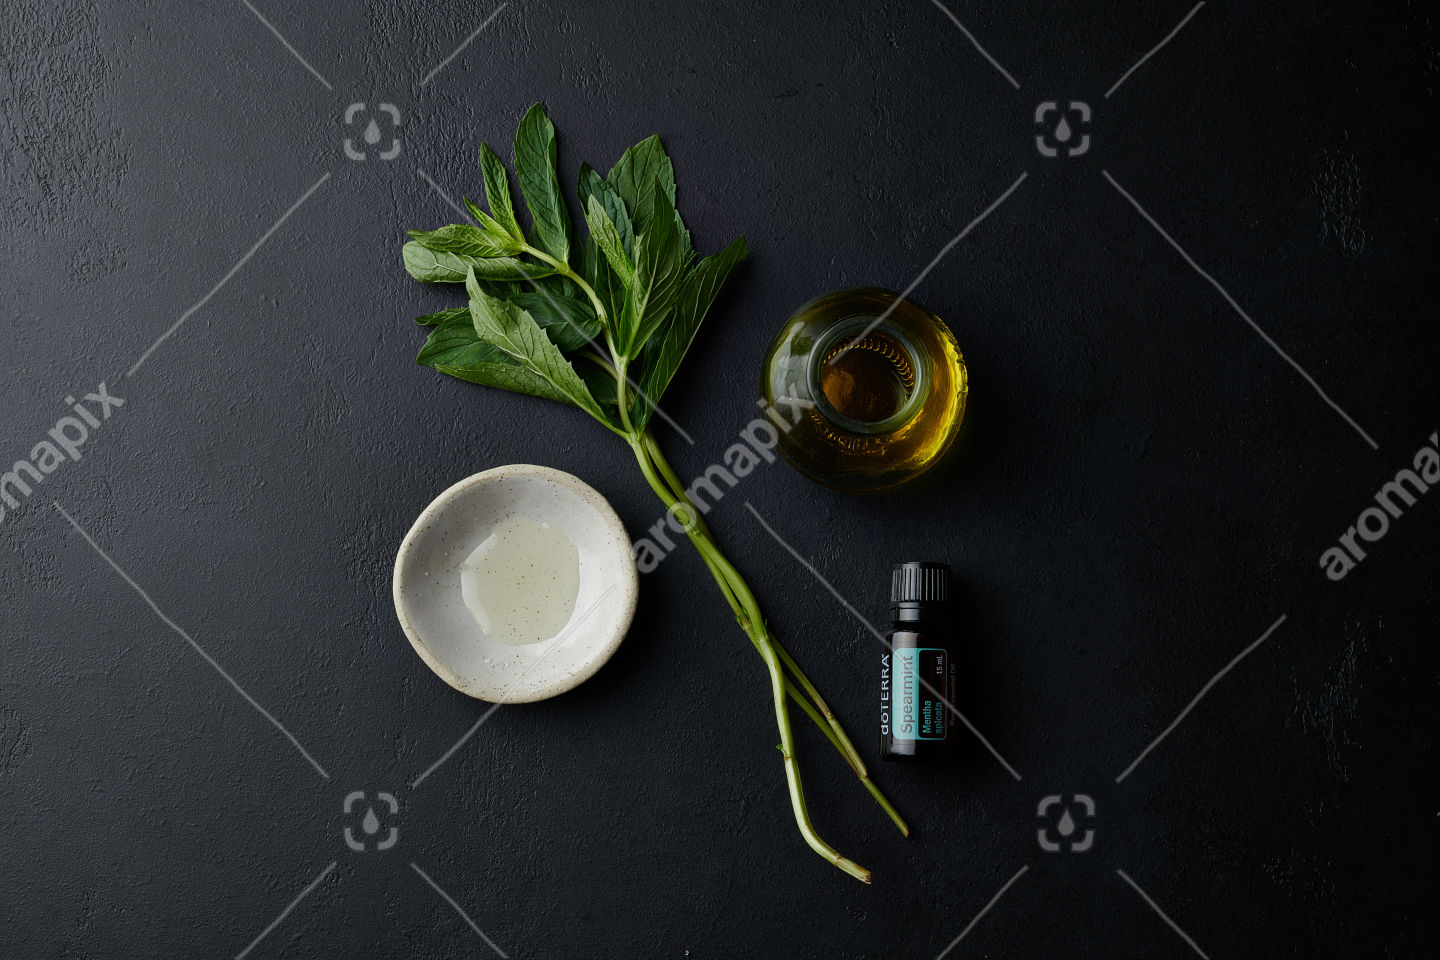 doTERRA Spearmint with utensils and a mint branch on black